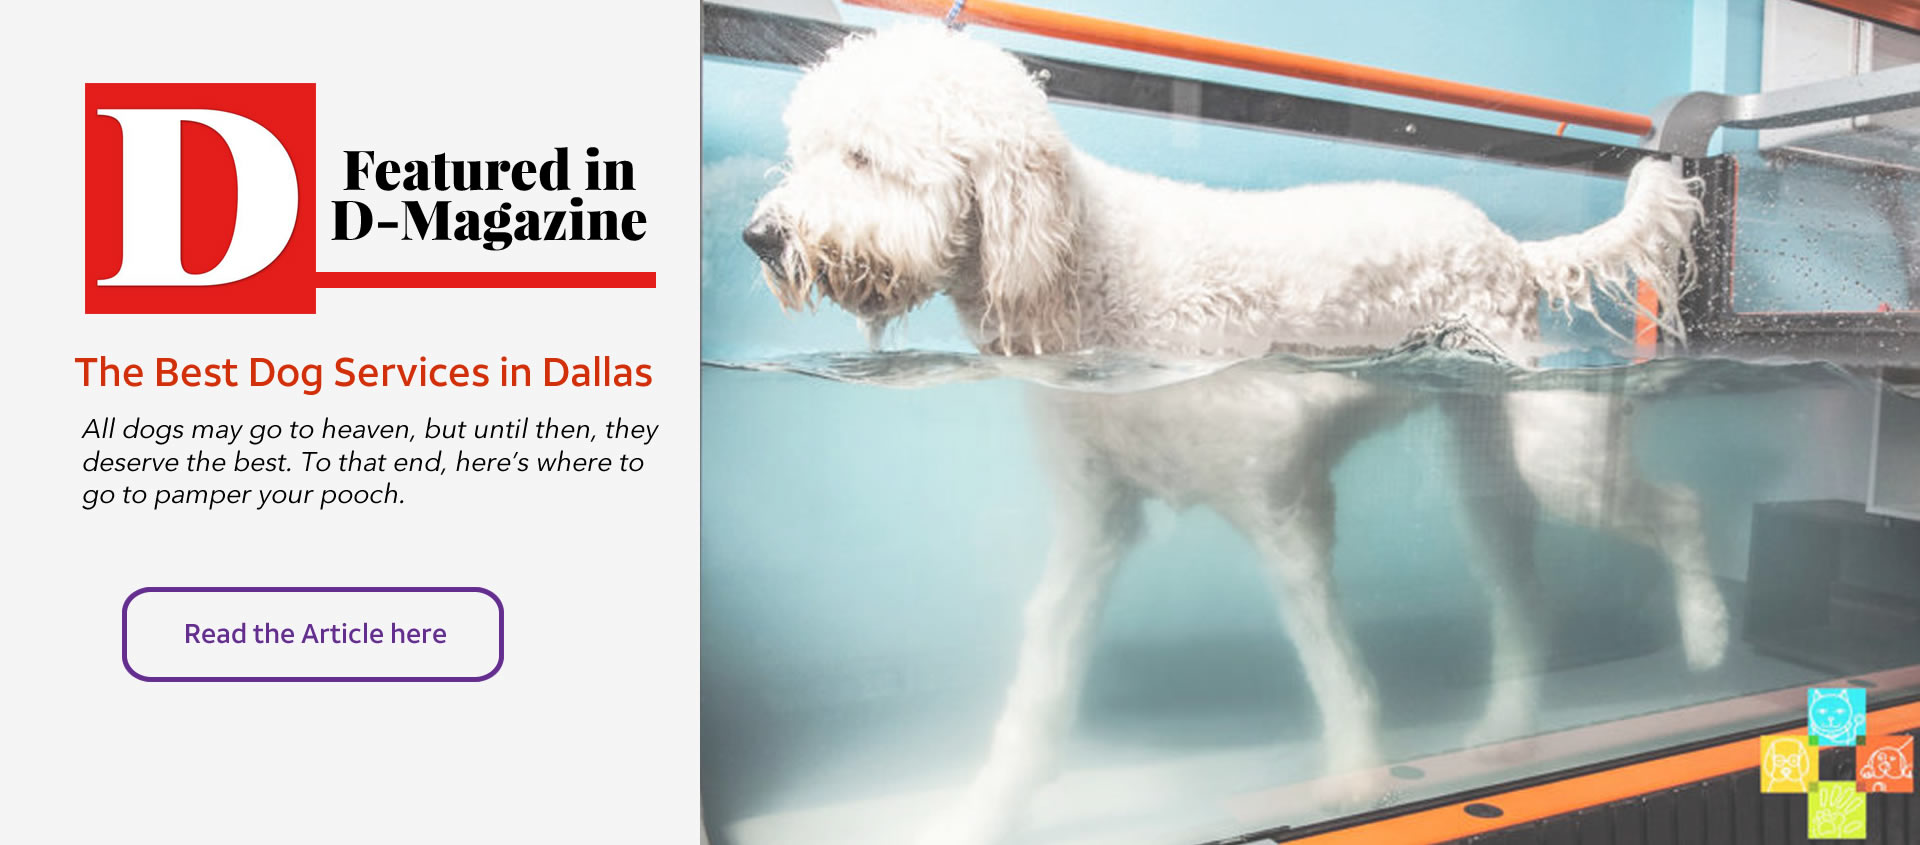 Dog kennel dog groomer dog grooming dog boarding in dallas our mission is to offer a full array of convenience oriented services to make your life easier and to keep you and your pets drooling solutioingenieria Images